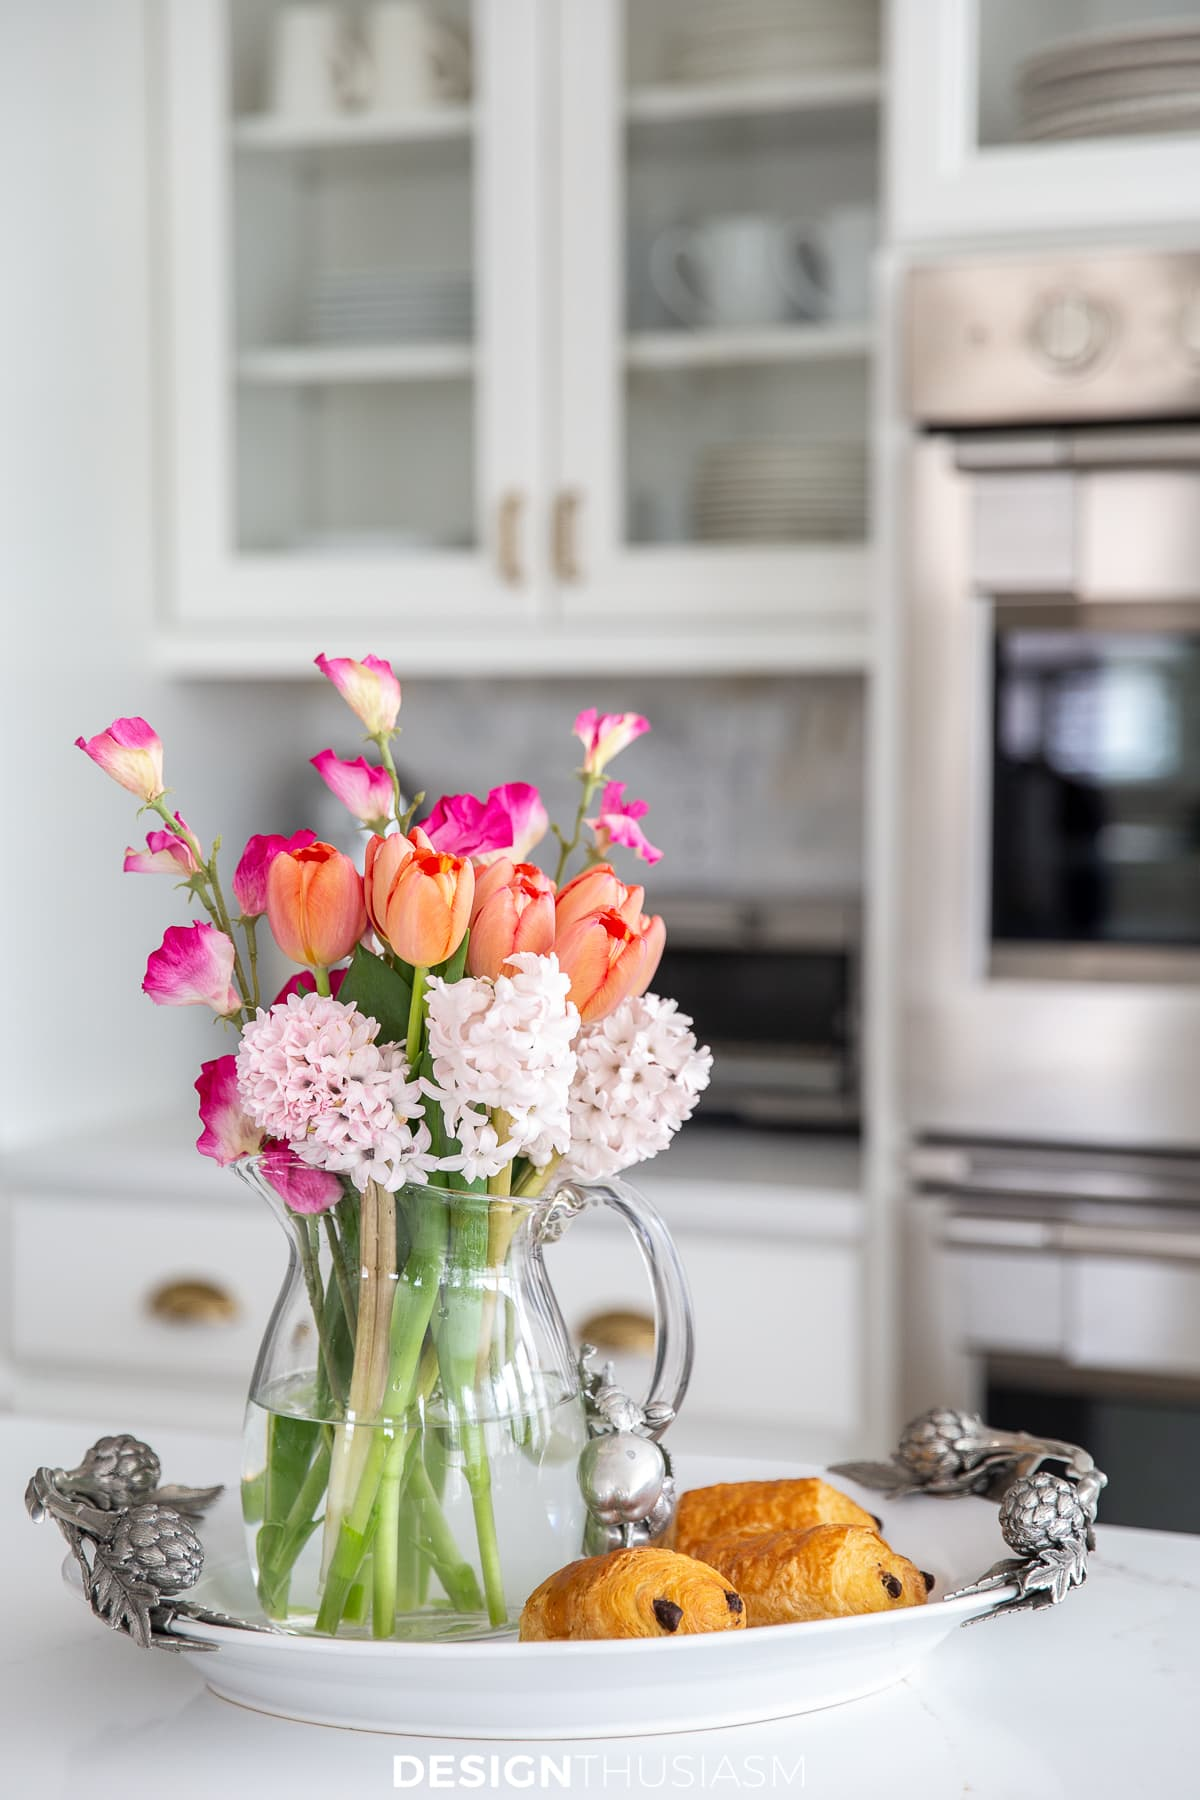 Spring Decor: 8 Design Elements That Will Refresh Your Spring Home